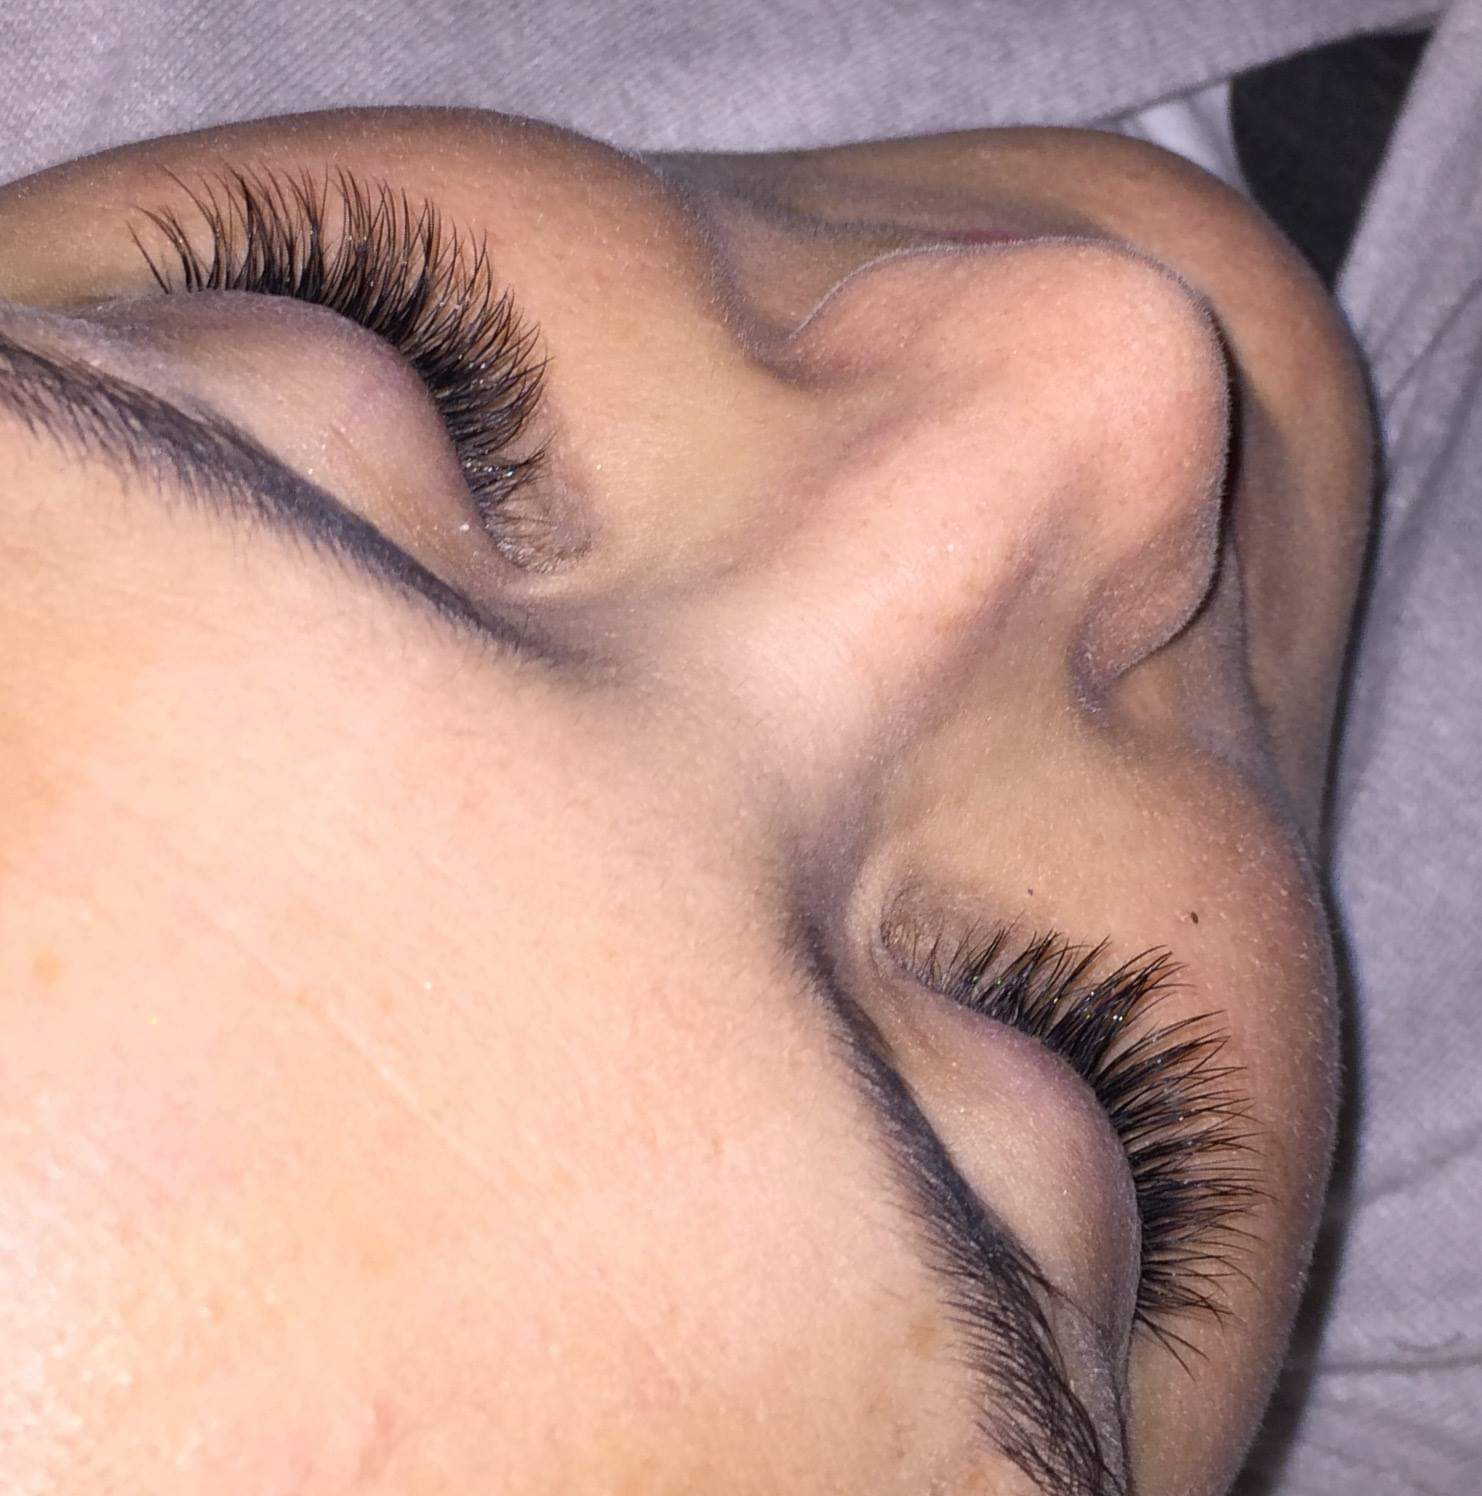 Should you get Eyelash Extensions?